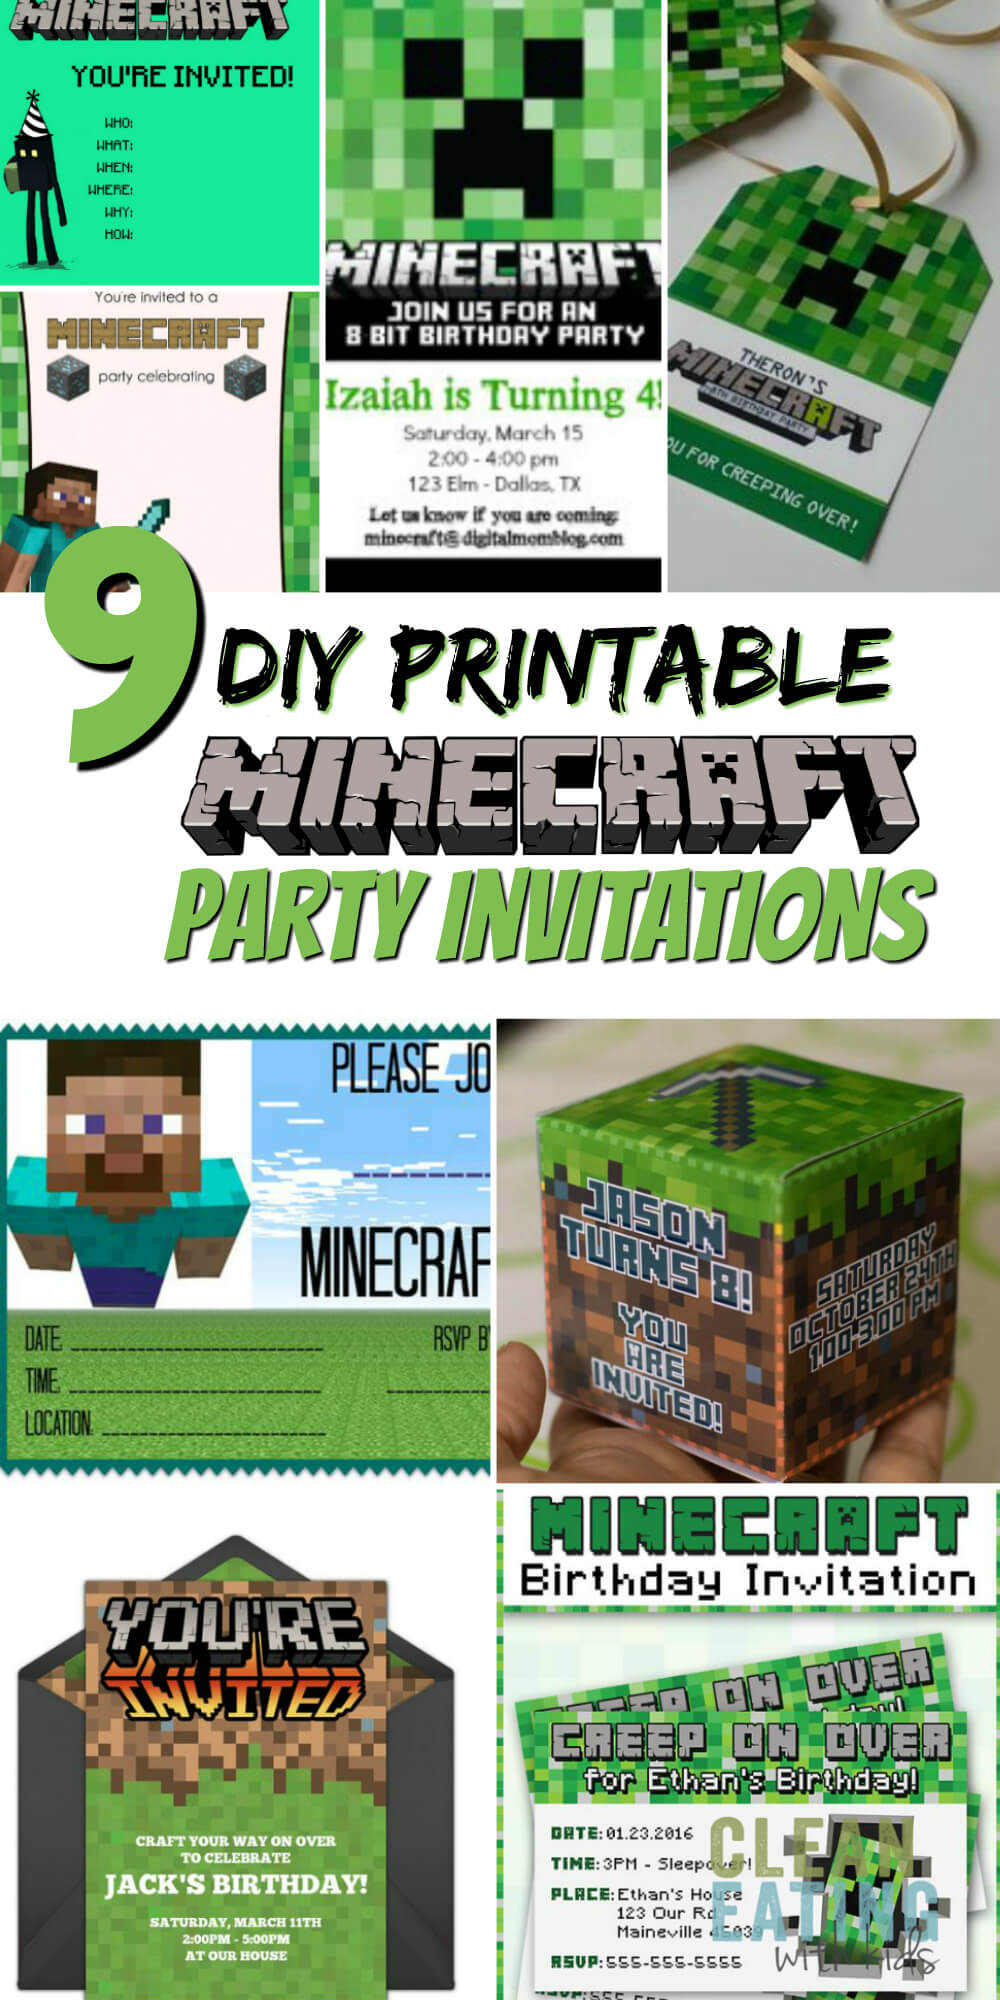 Free Diy Printable Minecraft Birthday Invitation - Clean with Minecraft Birthday Card Template